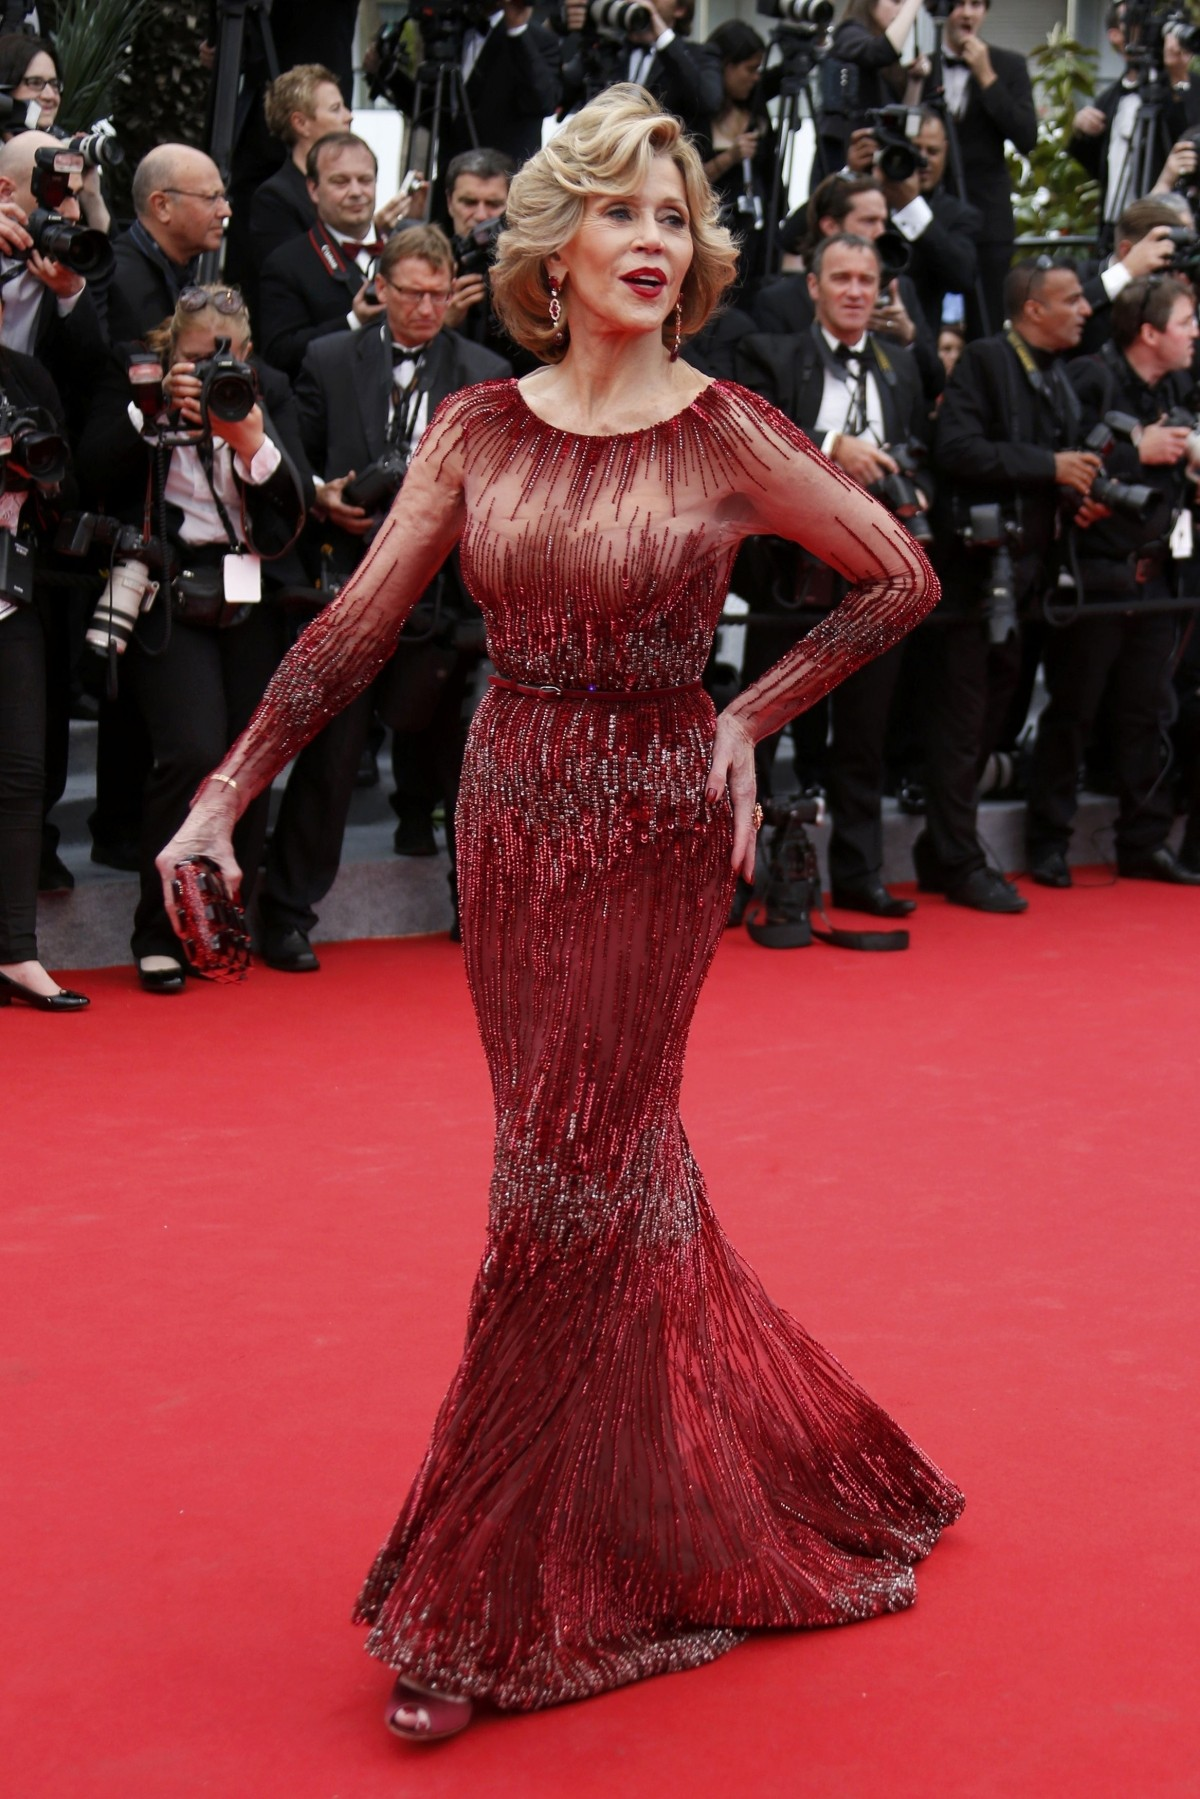 Actress Jane Fonda poses on the red carpet as she arrives for the opening ceremony of the 67th Cannes Film Festival in Cannes